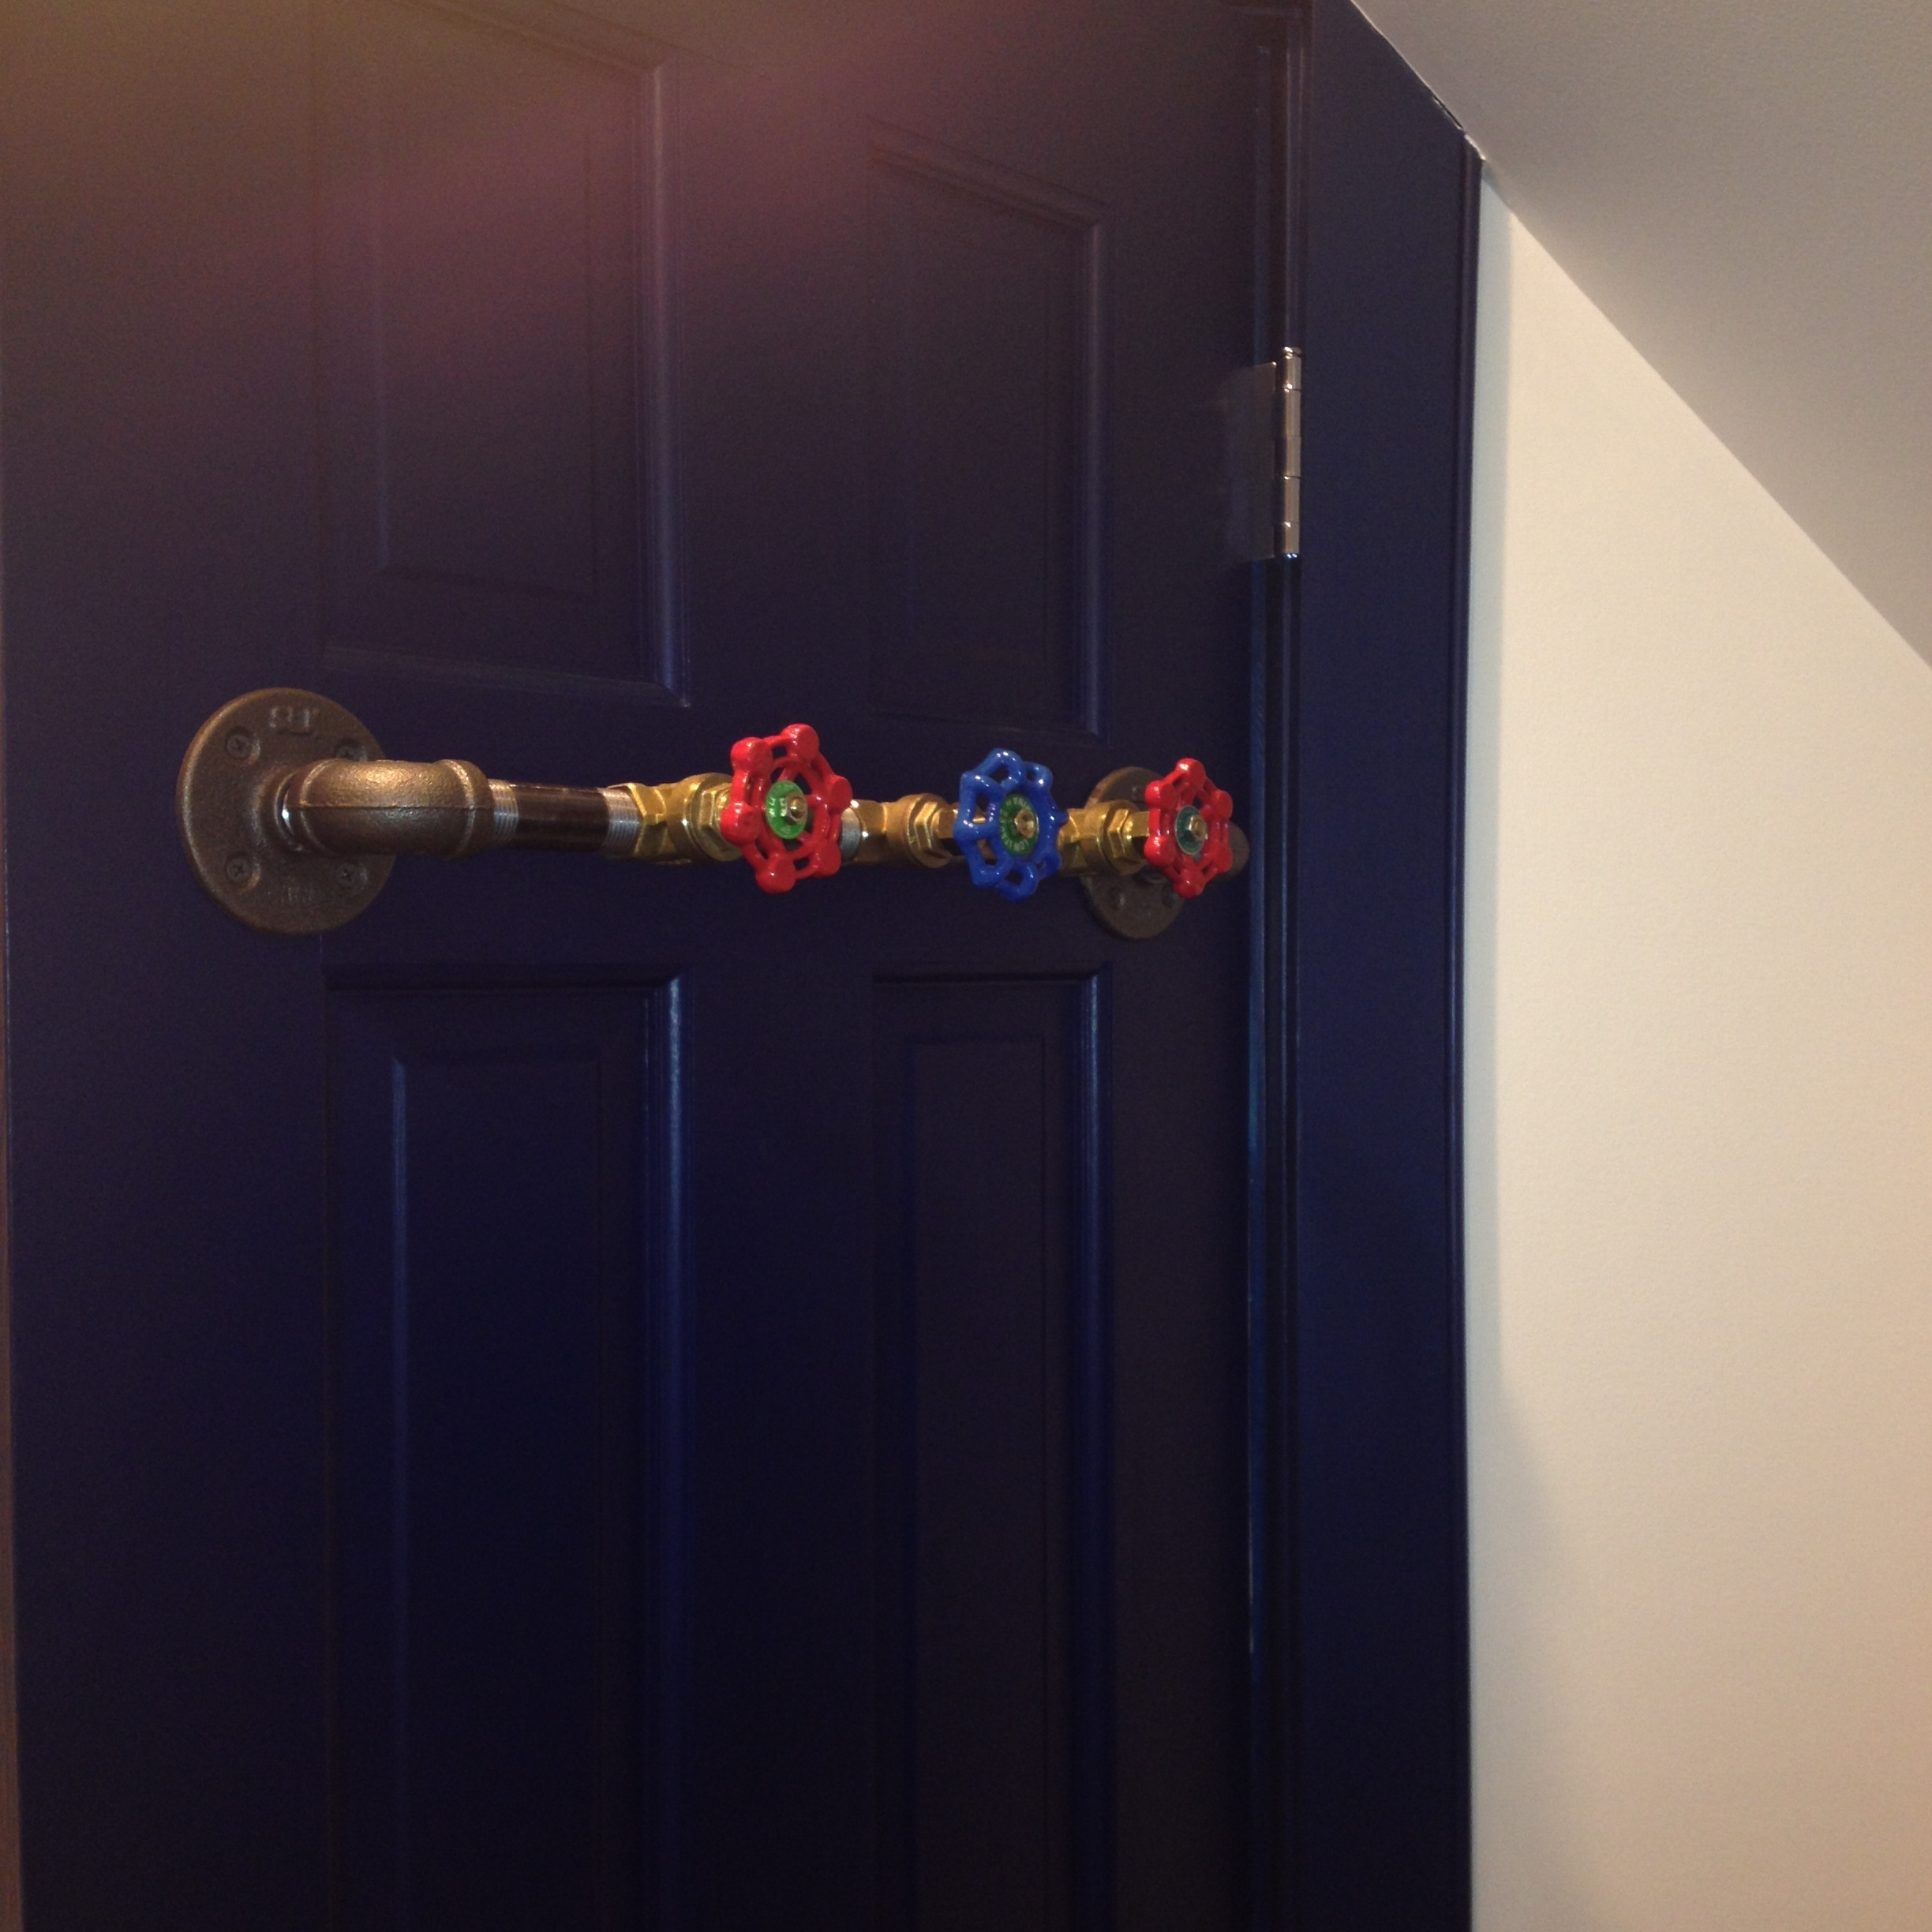 Low on wall space for towel bars? How about adding robe hooks to the back of the door? We had fun in this boys bathroom and used pipe fittings to create this sturdy towel holder.